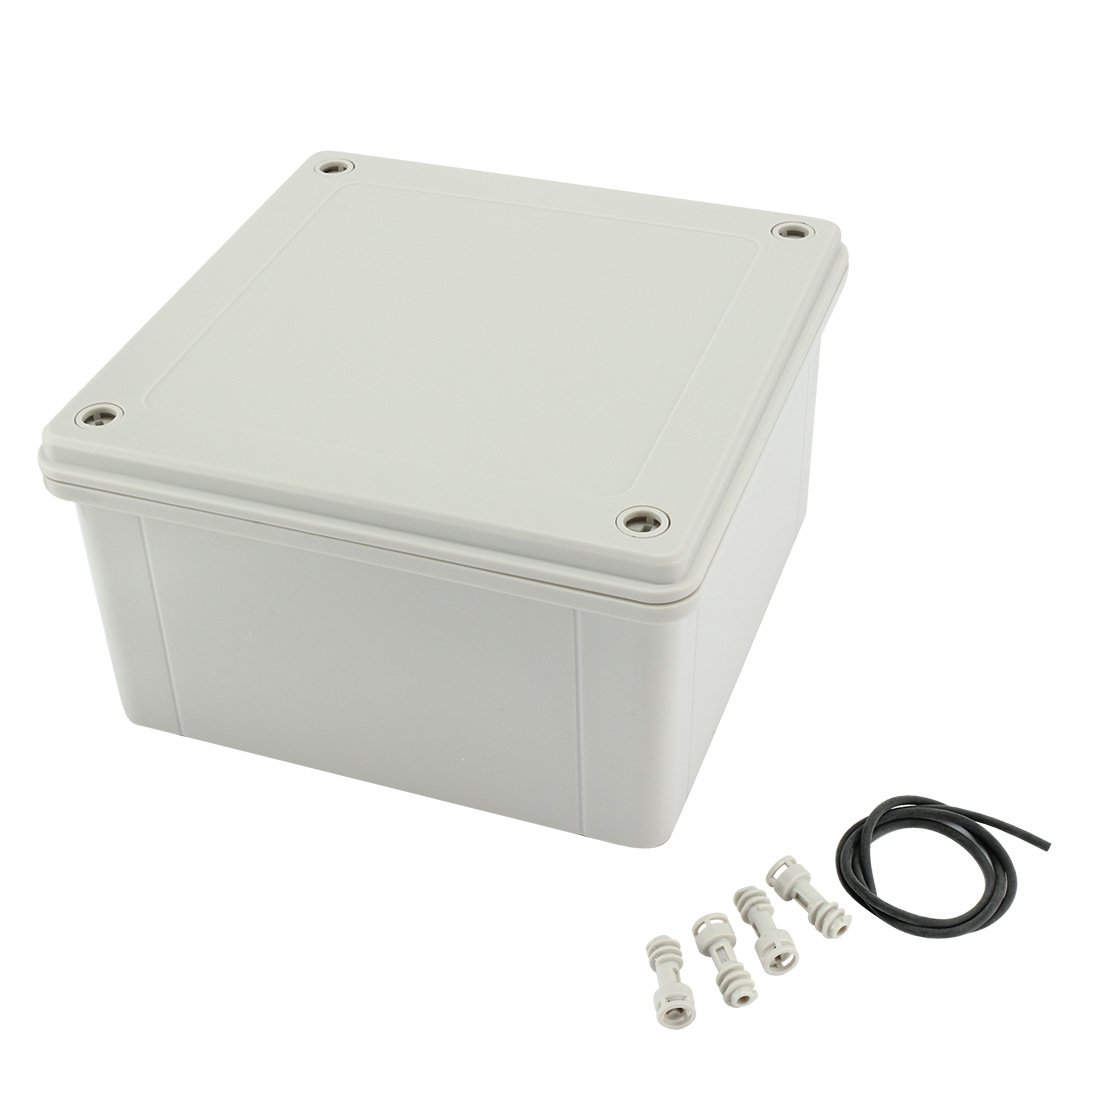 uxcell 6.3x6.3x3.54(160mmx160mmx90mm) ABS Dustproof IP65 Junction Box Universal Project Enclosure a17031600ux1019